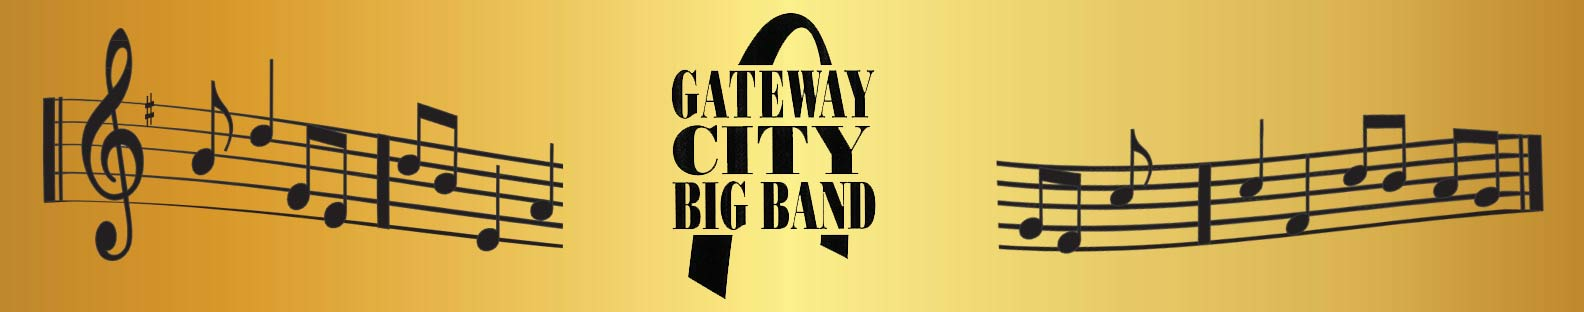 Gateway City Big Band